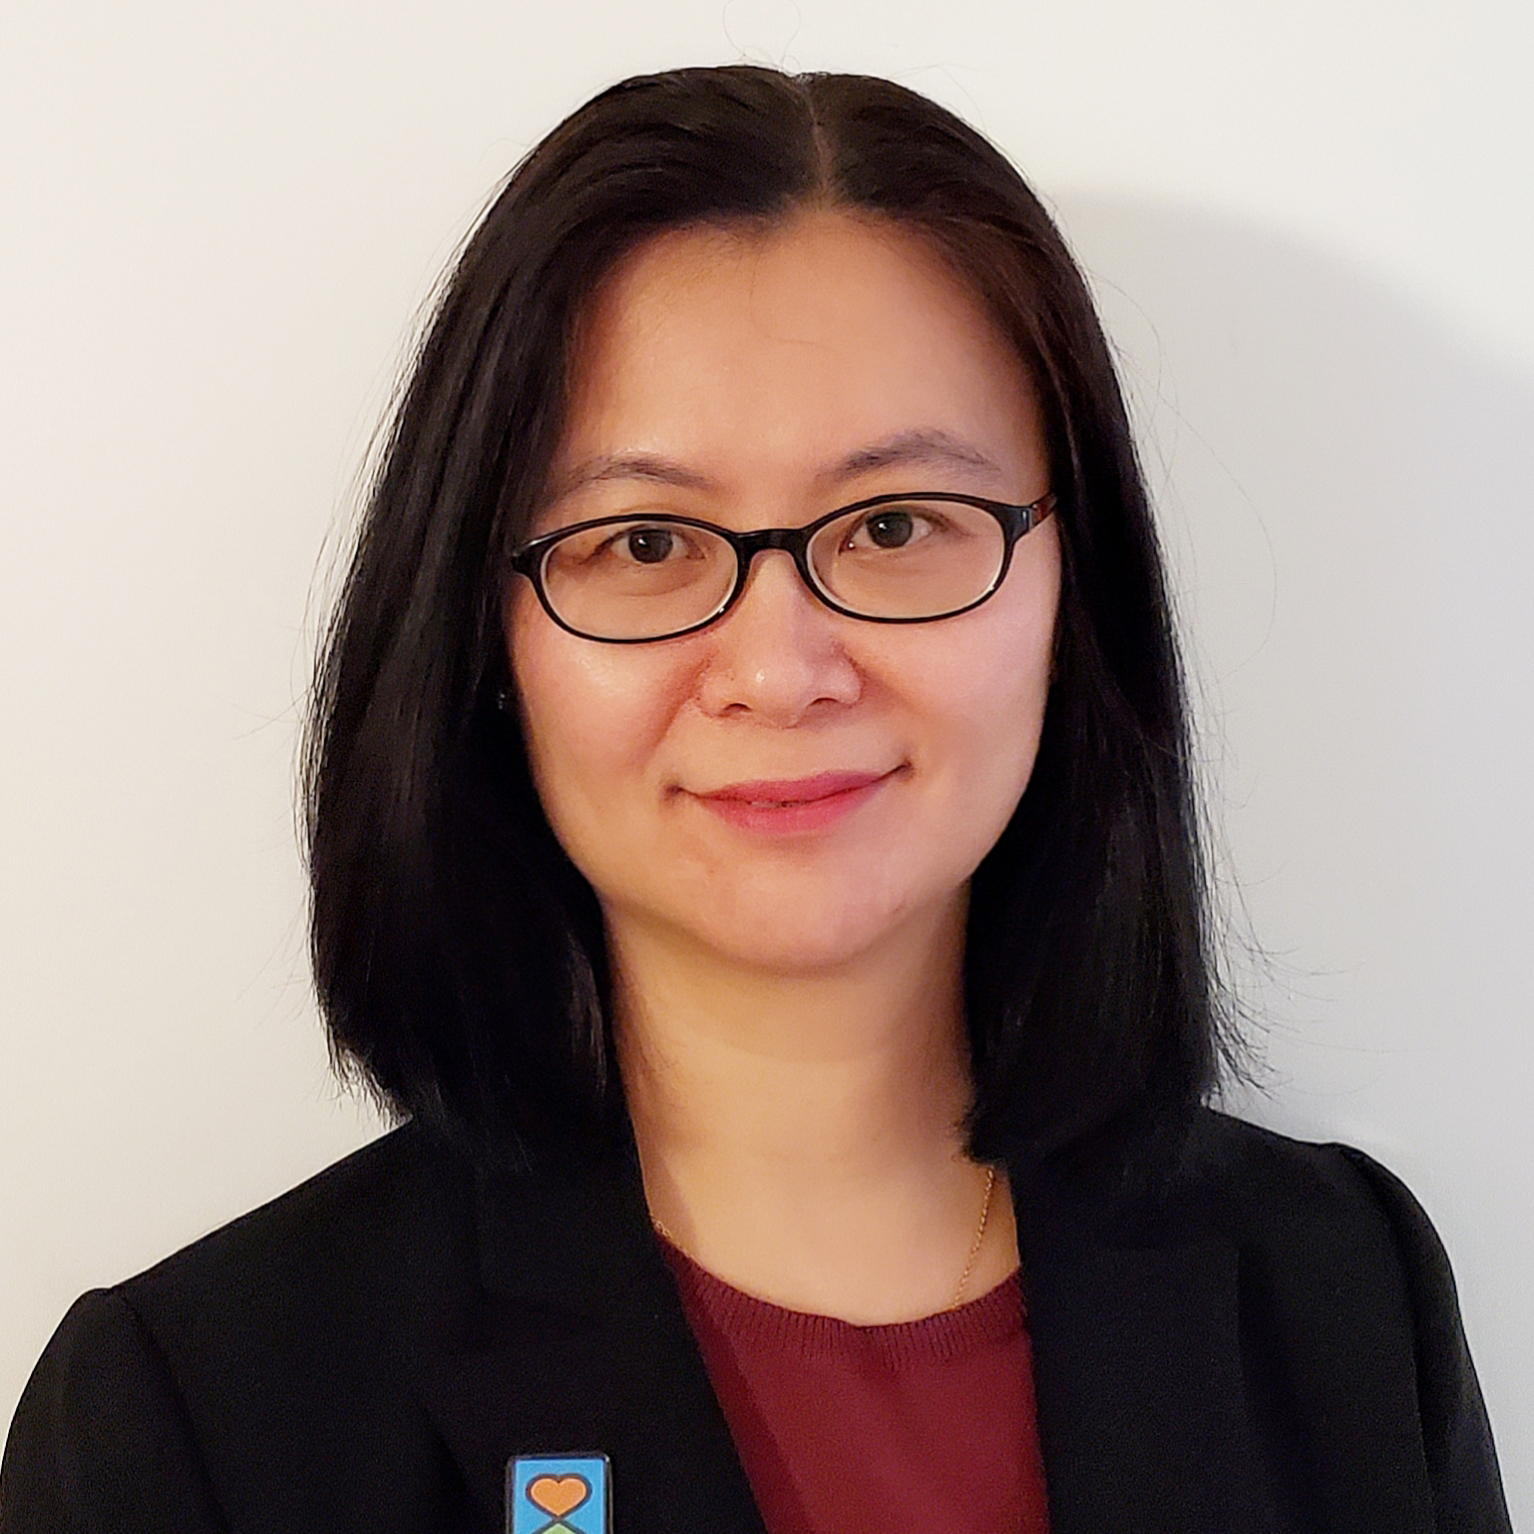 SUE CAI JOINS STAFF AT PROVIDENCE COMMUNITY HOUSING